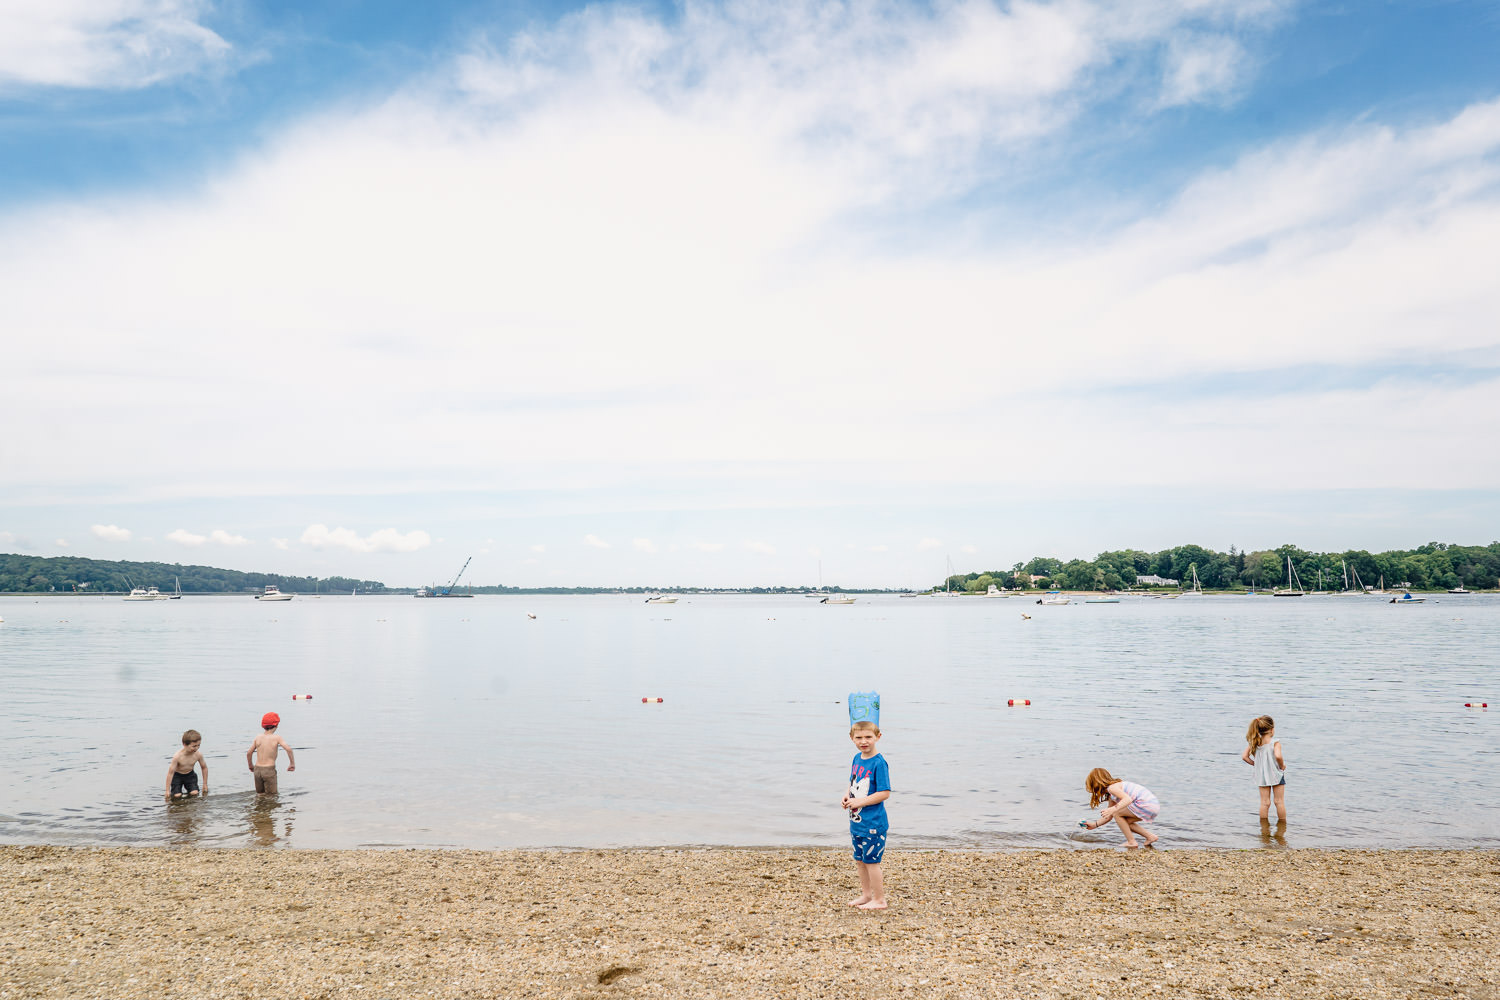 Children on the beach at Oyster Bay.